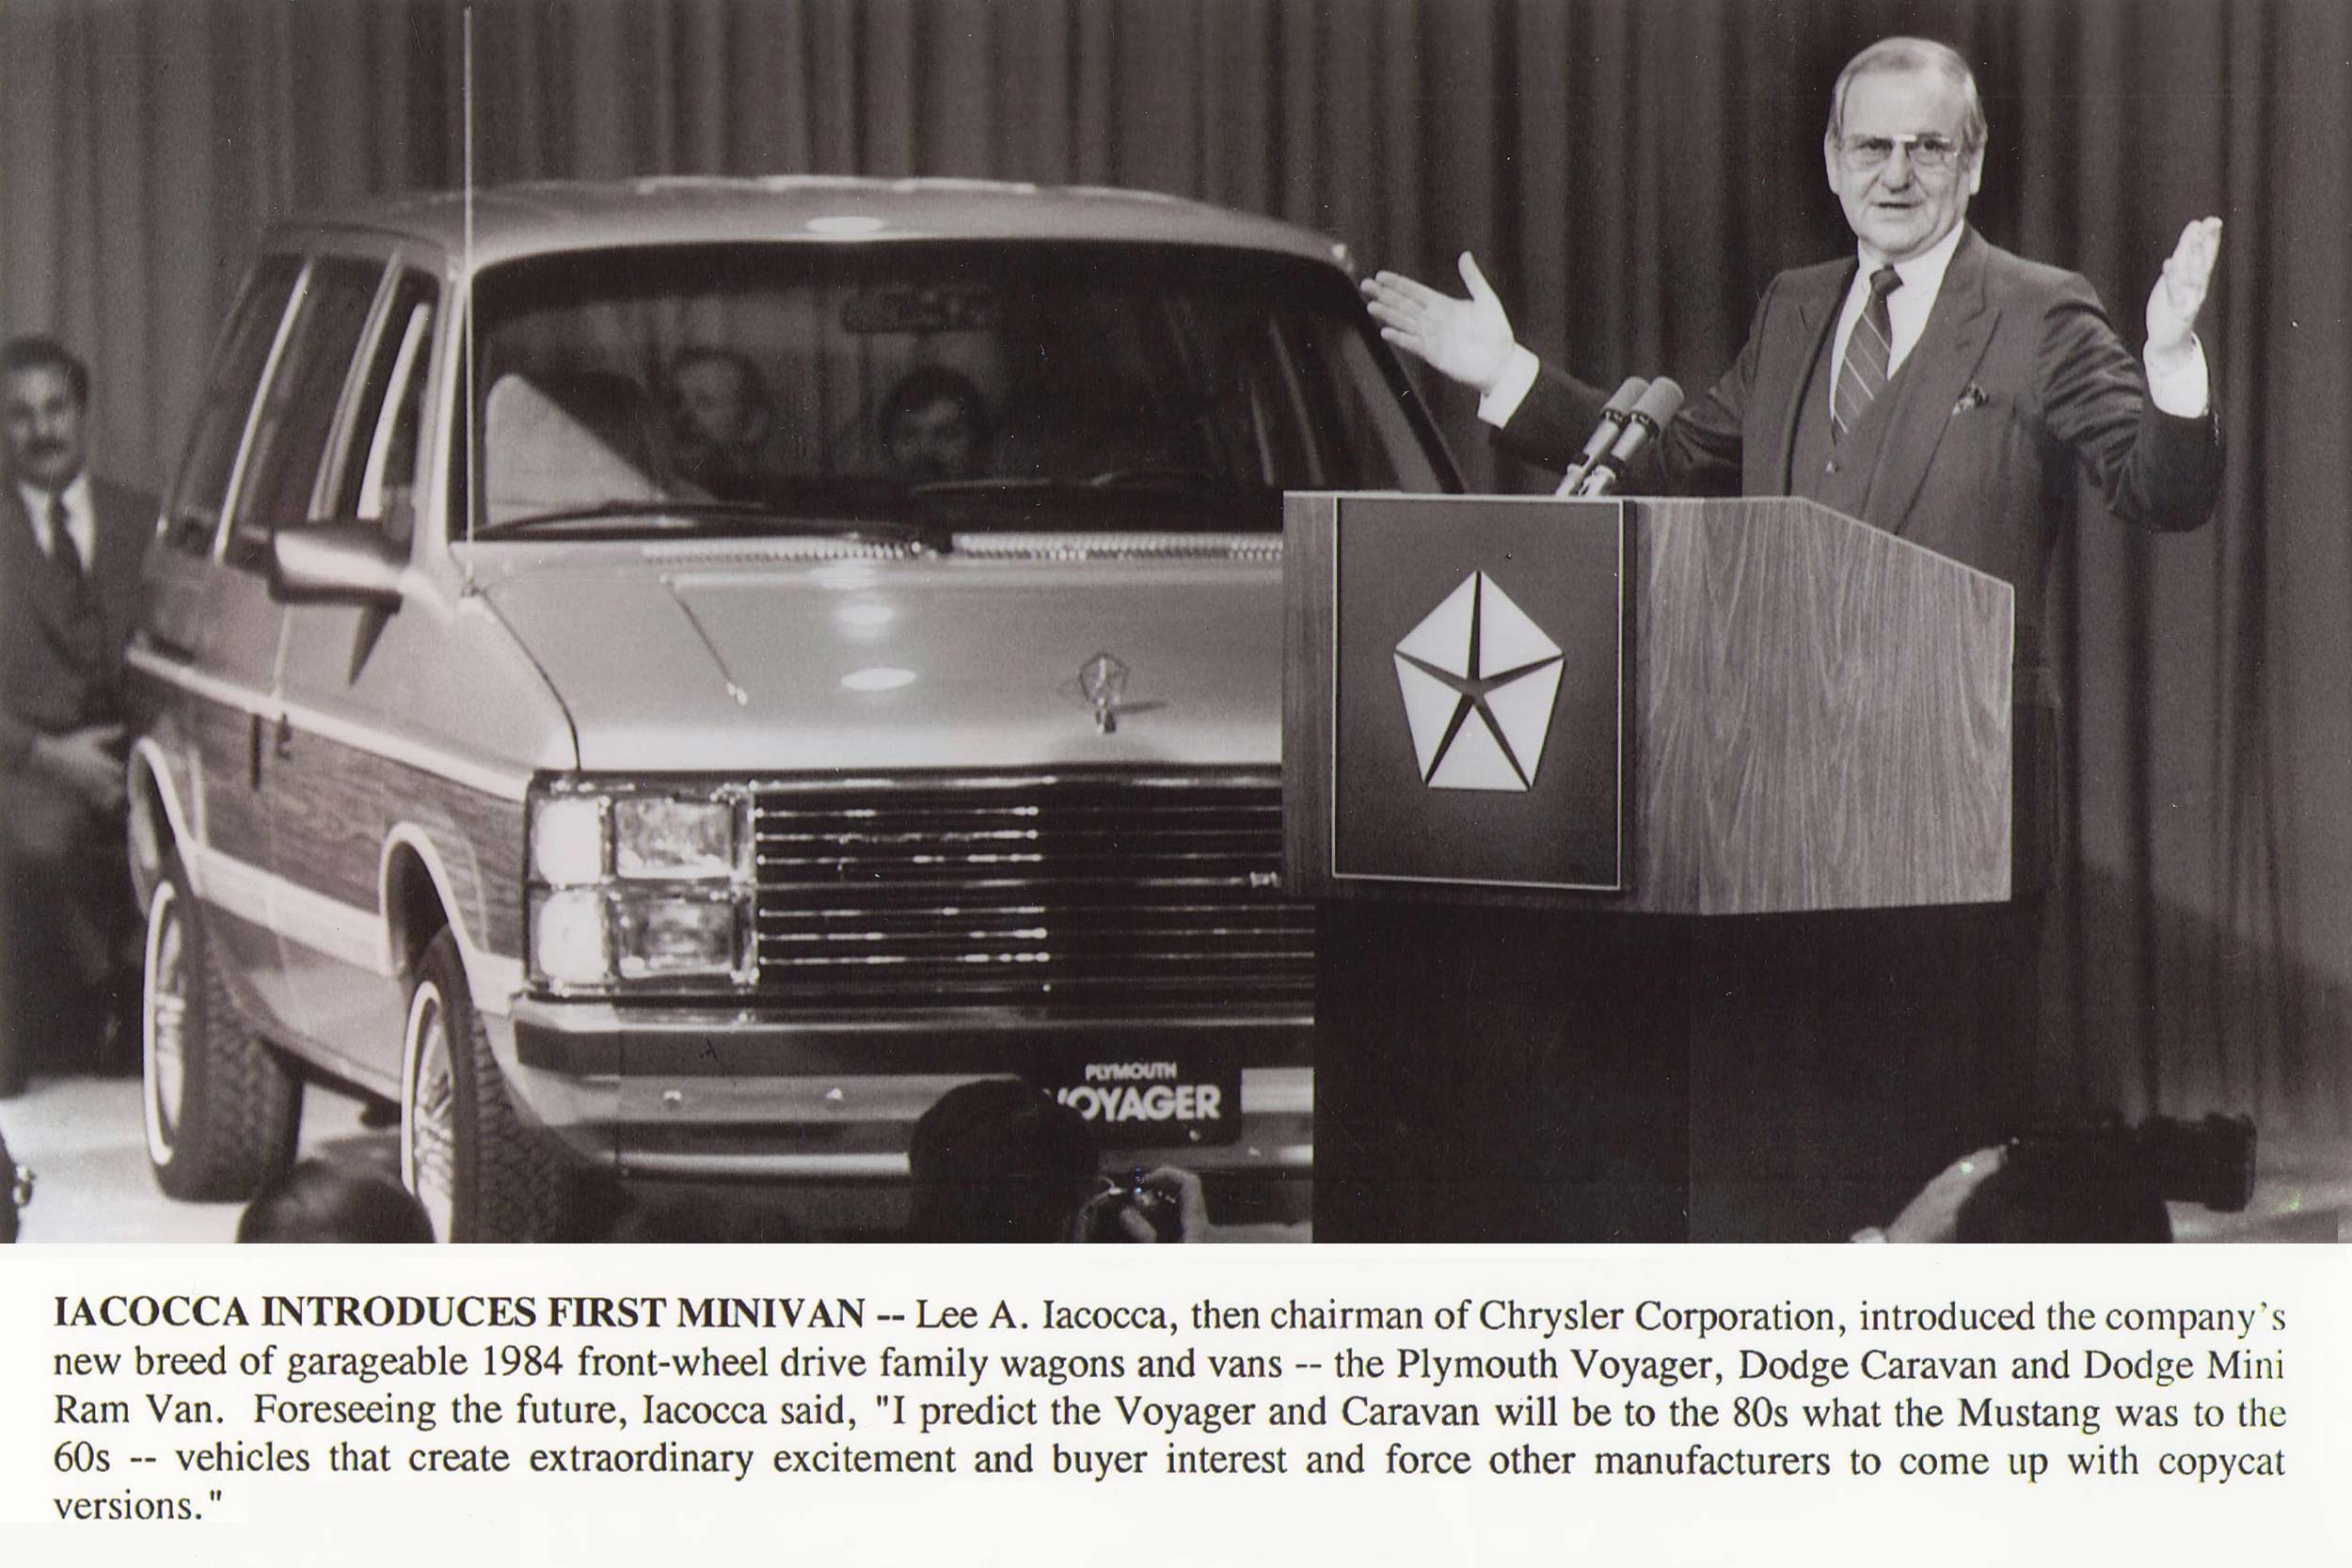 The first Chrysler minivan and Lee Iacocca